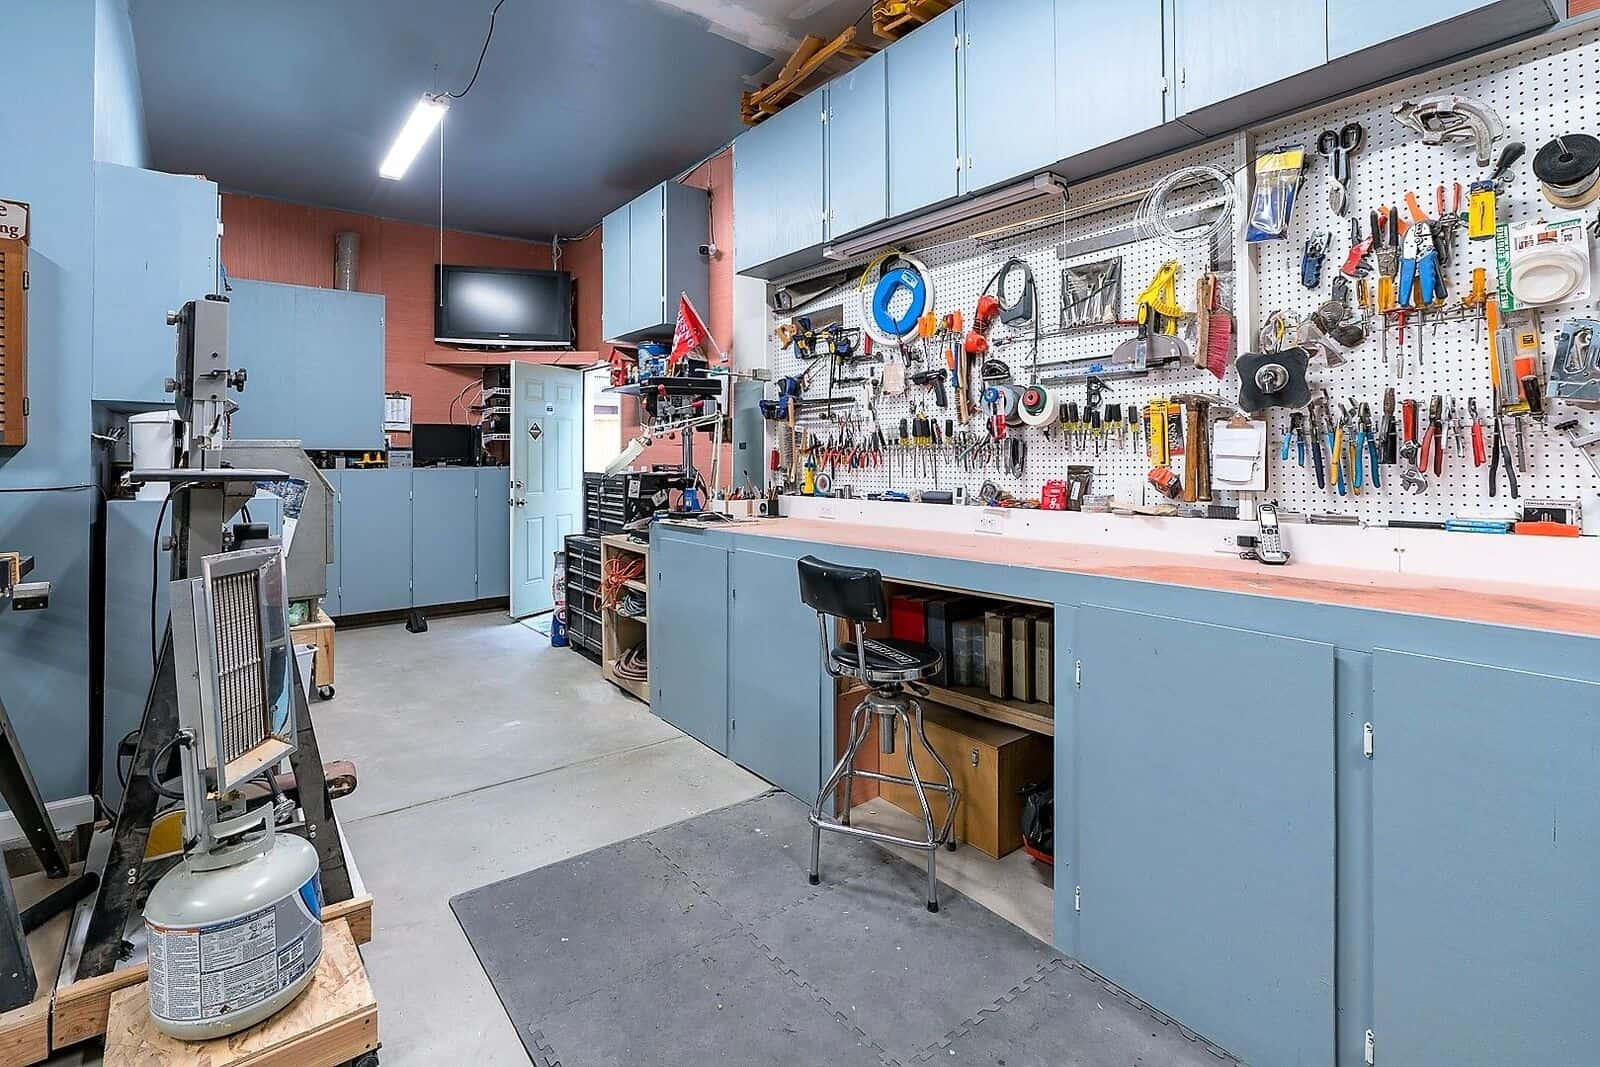 Extra Garage Space for Workshop